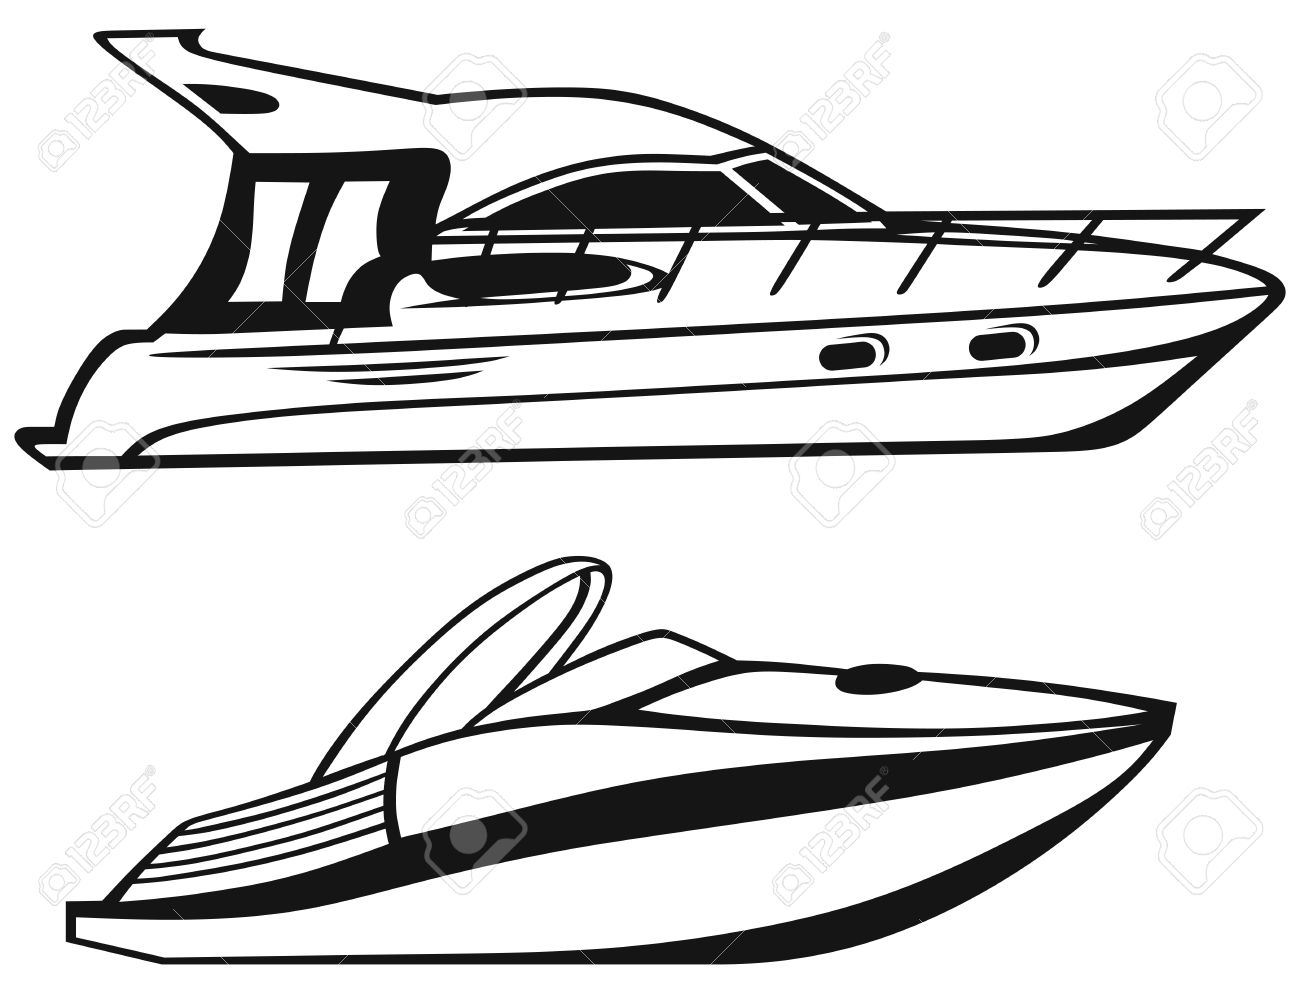 Speed boat clipart black and white graphic transparent library Speed boat clipart black and white 4 » Clipart Station graphic transparent library